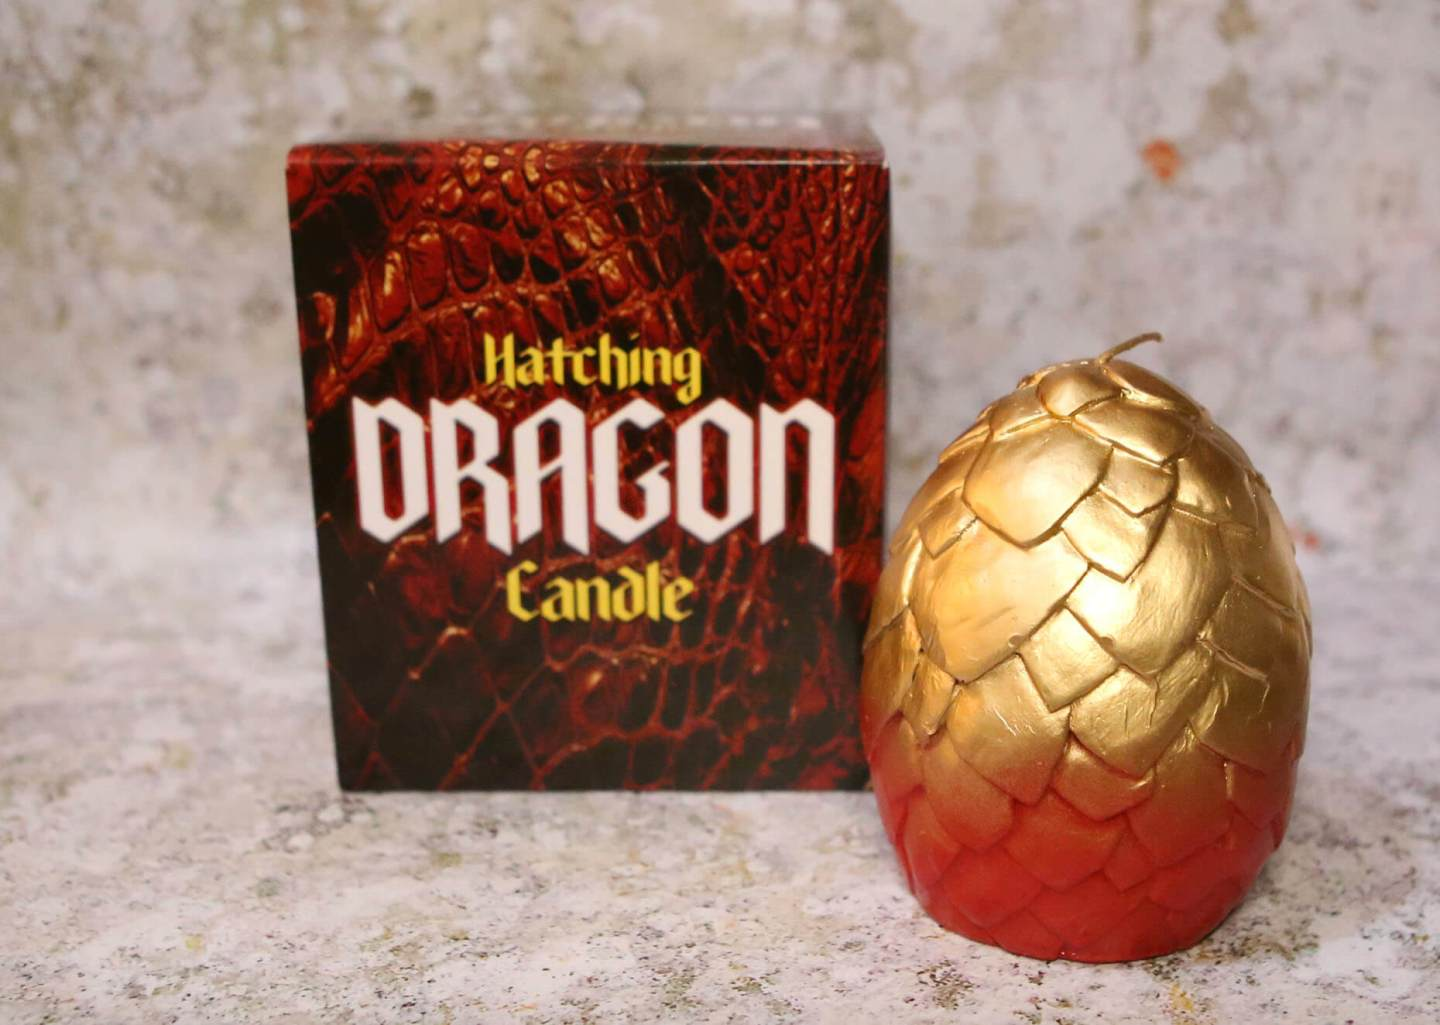 Hatching Dragon Candle